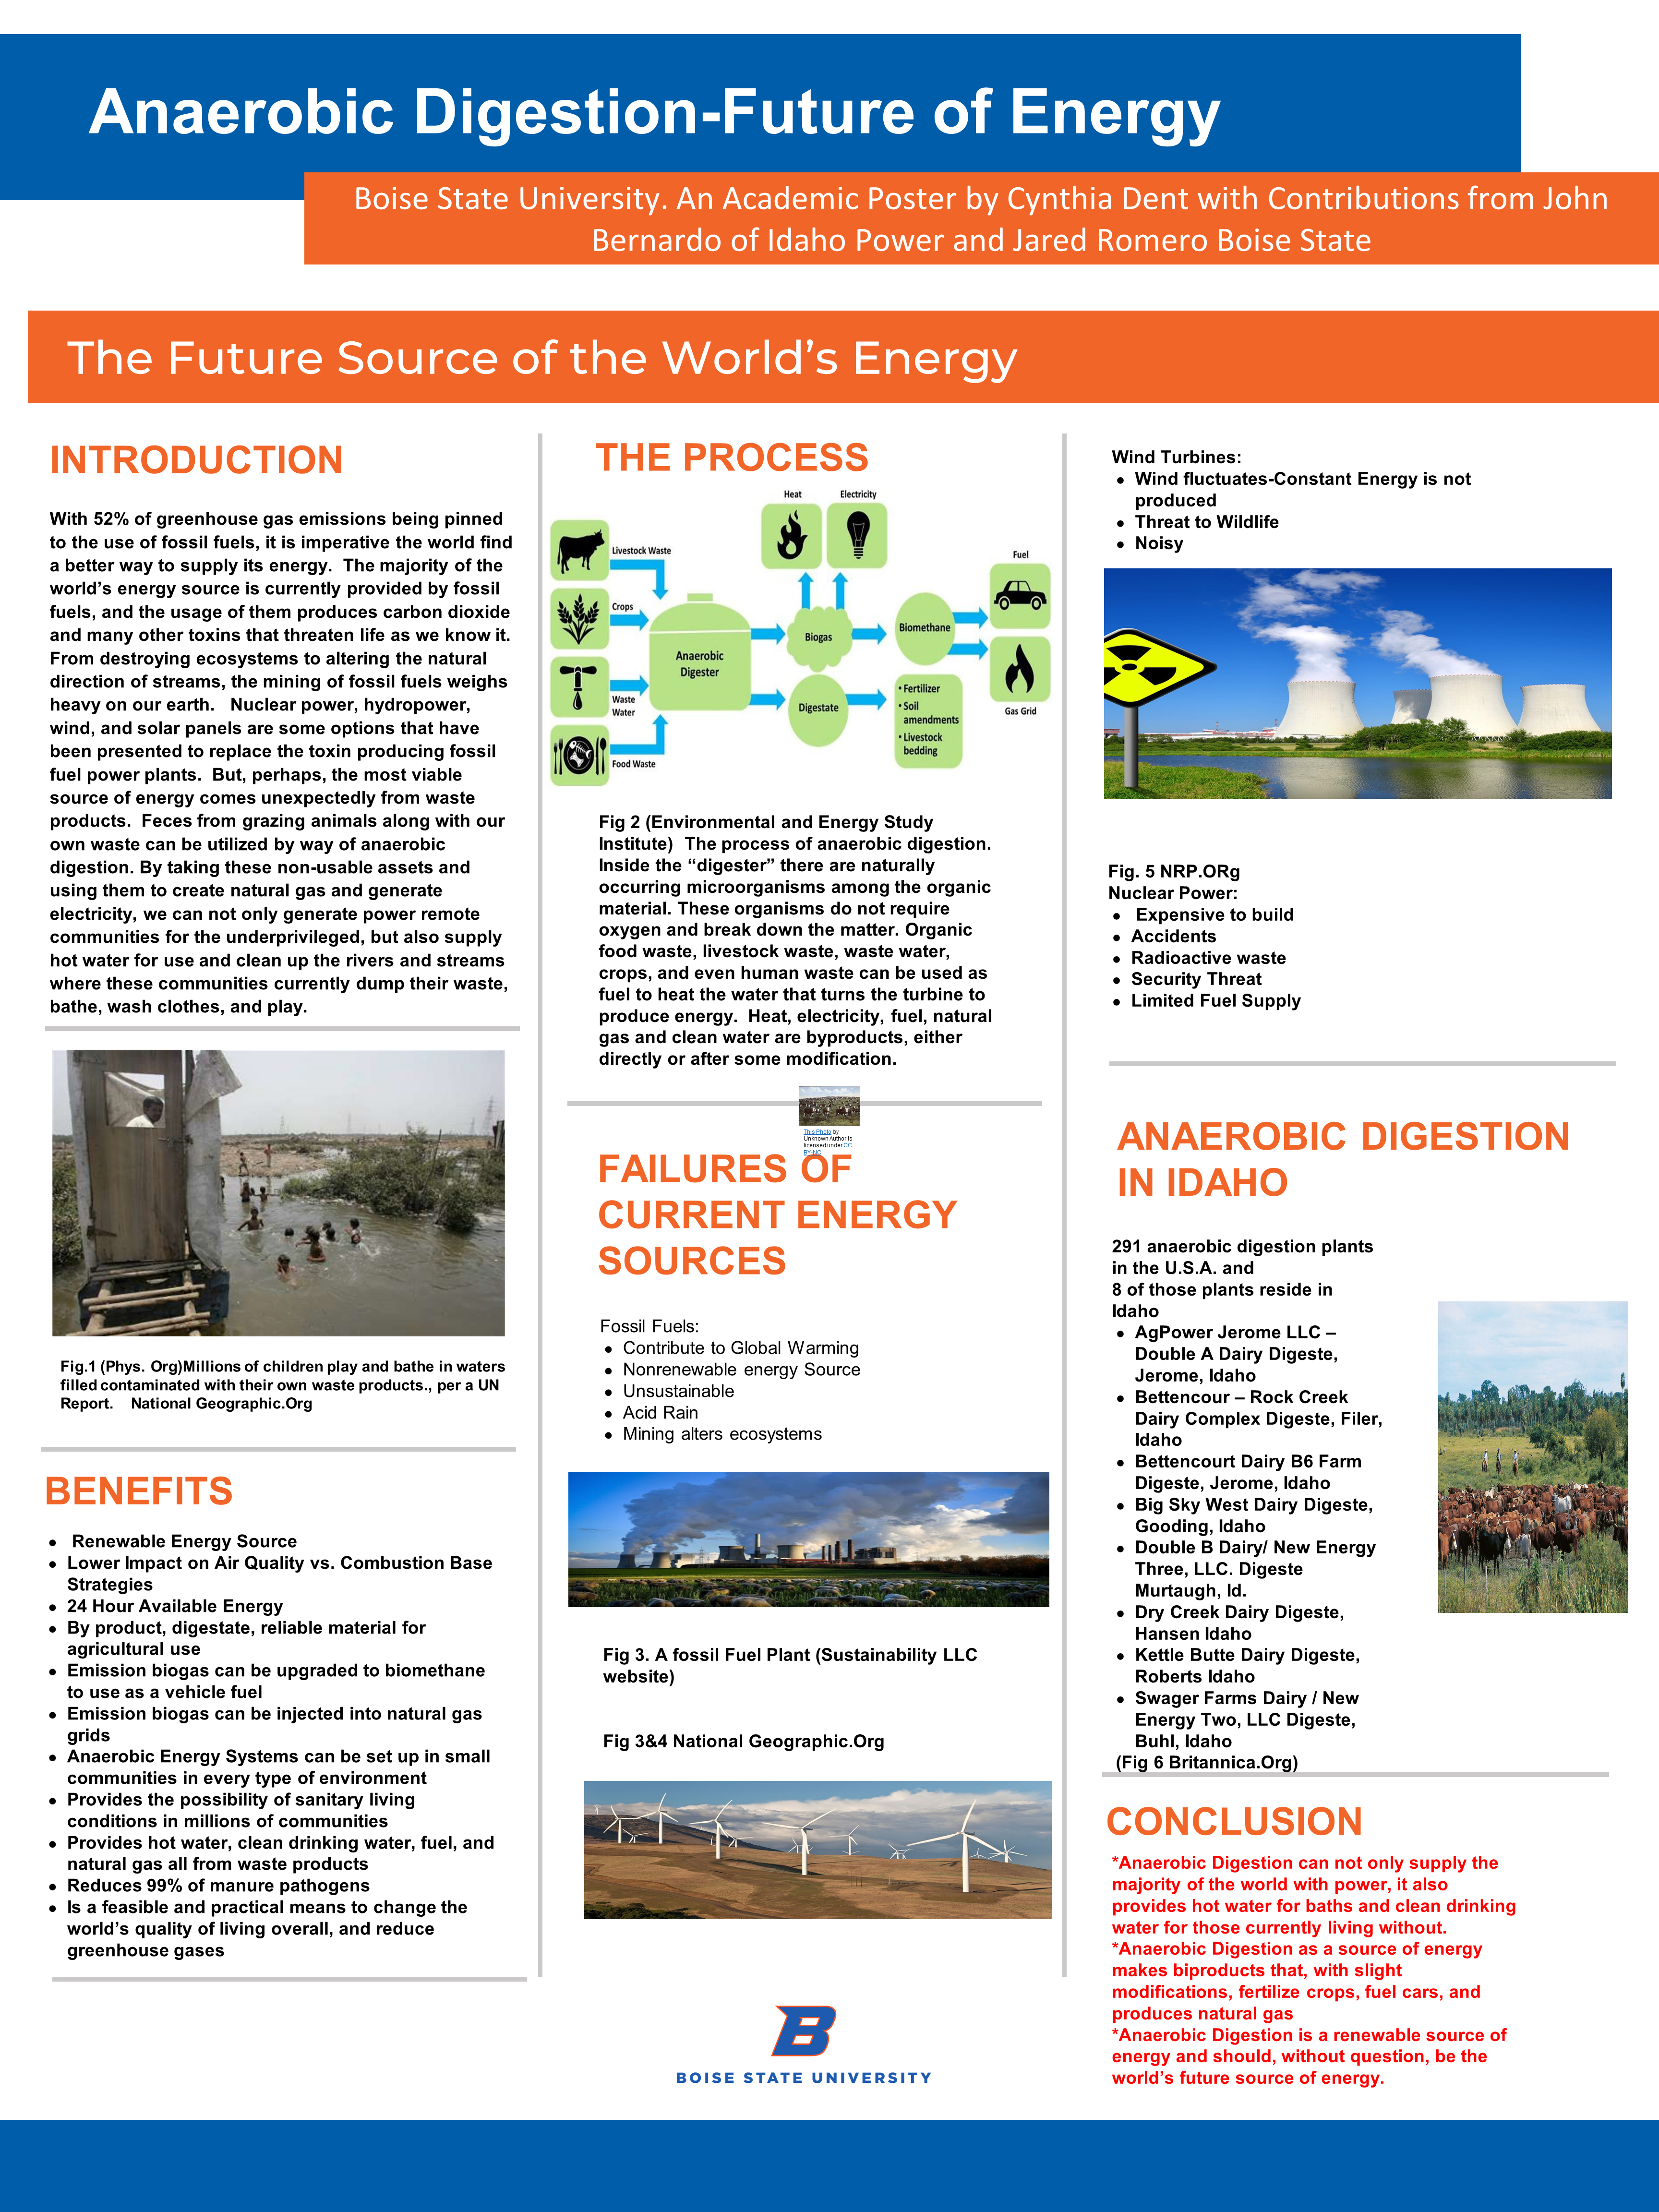 Dent final poster - view poster content on posts page